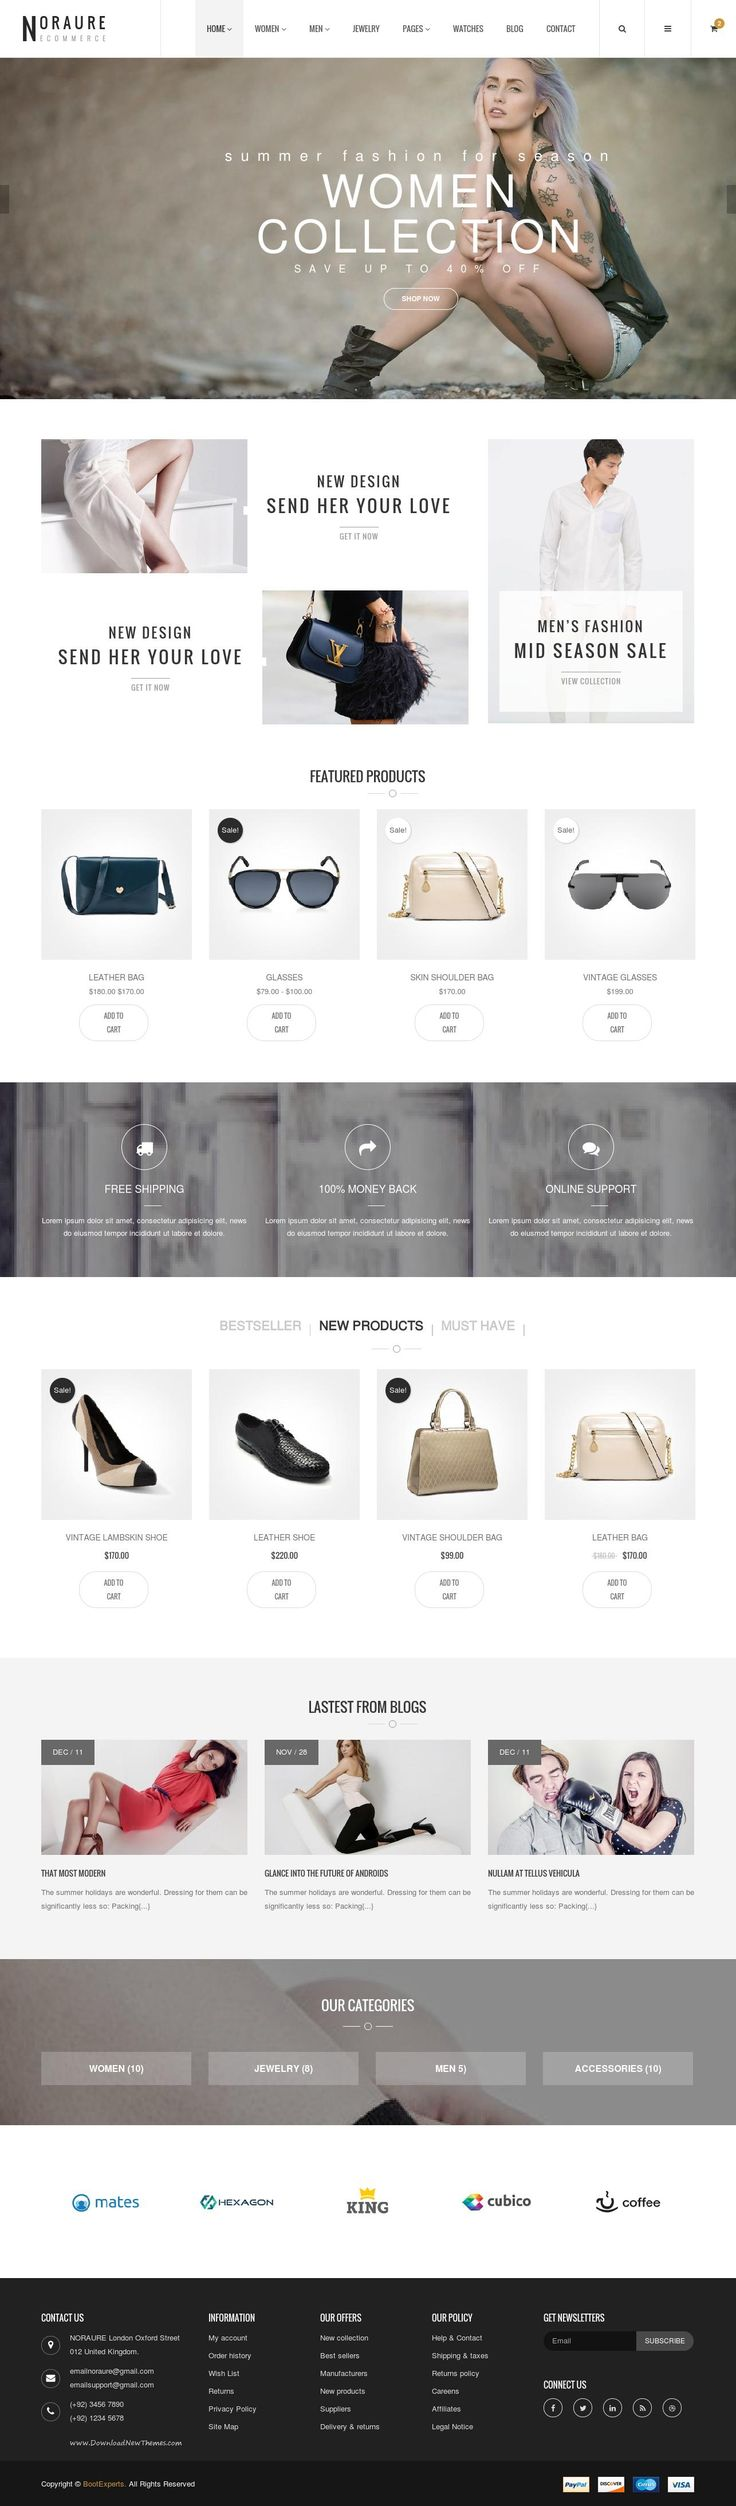 Noraure Mega Shop Bootstrap Template is a clean and elegant design with 6 defined layouts for home page to give you best selections in customization.